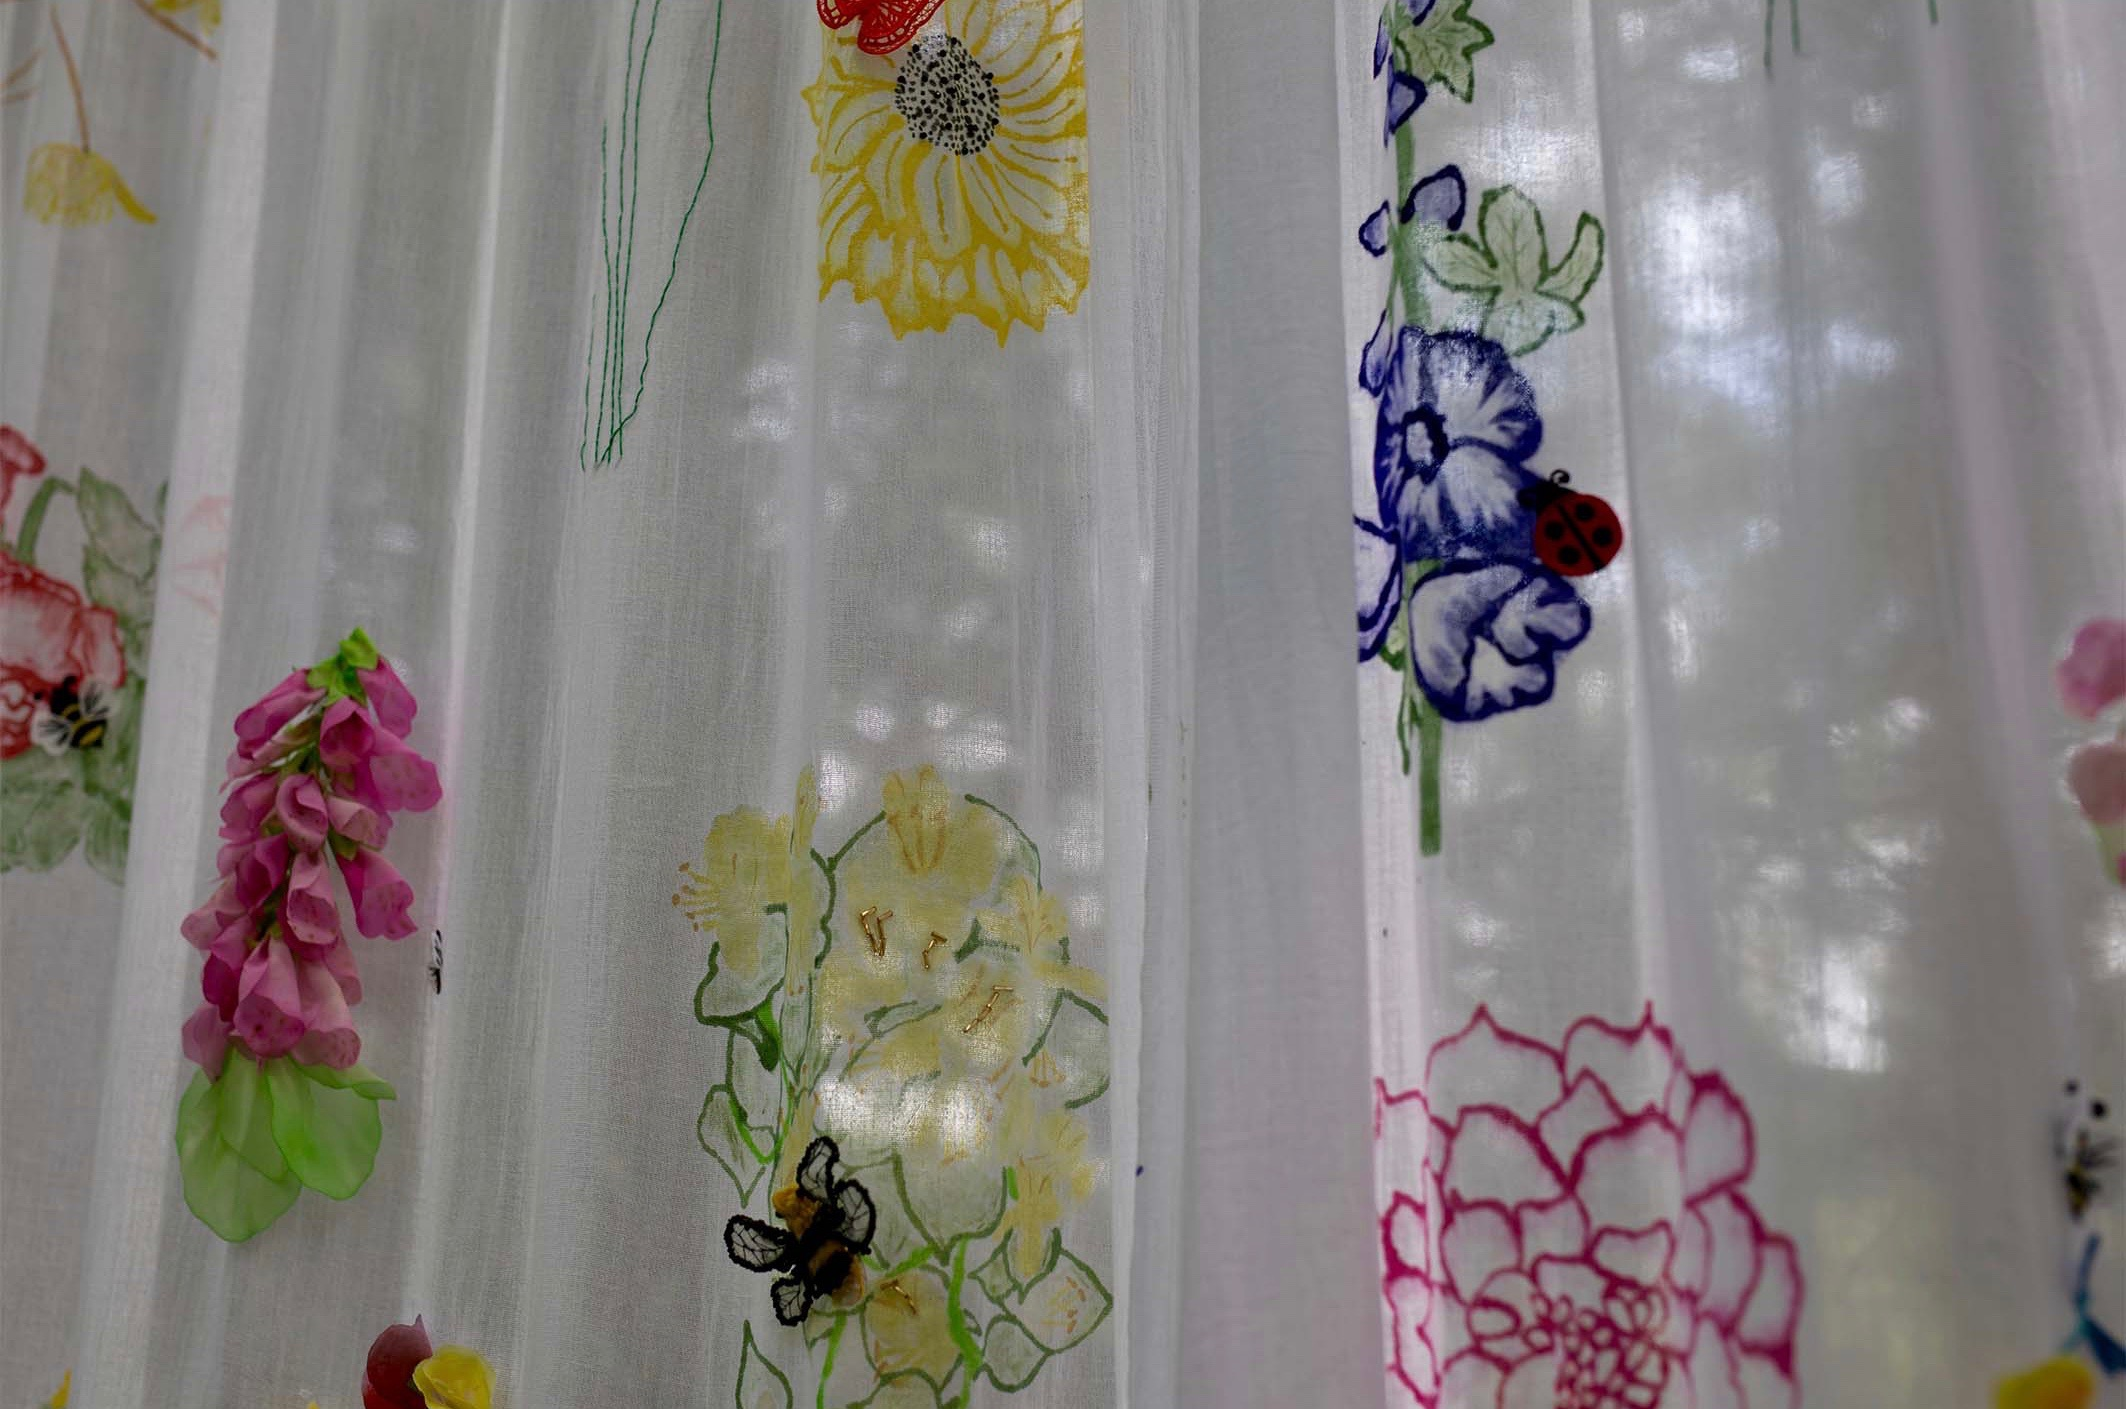 Whimsical Cottage Garden Drapes showing the translucent element of the drapes